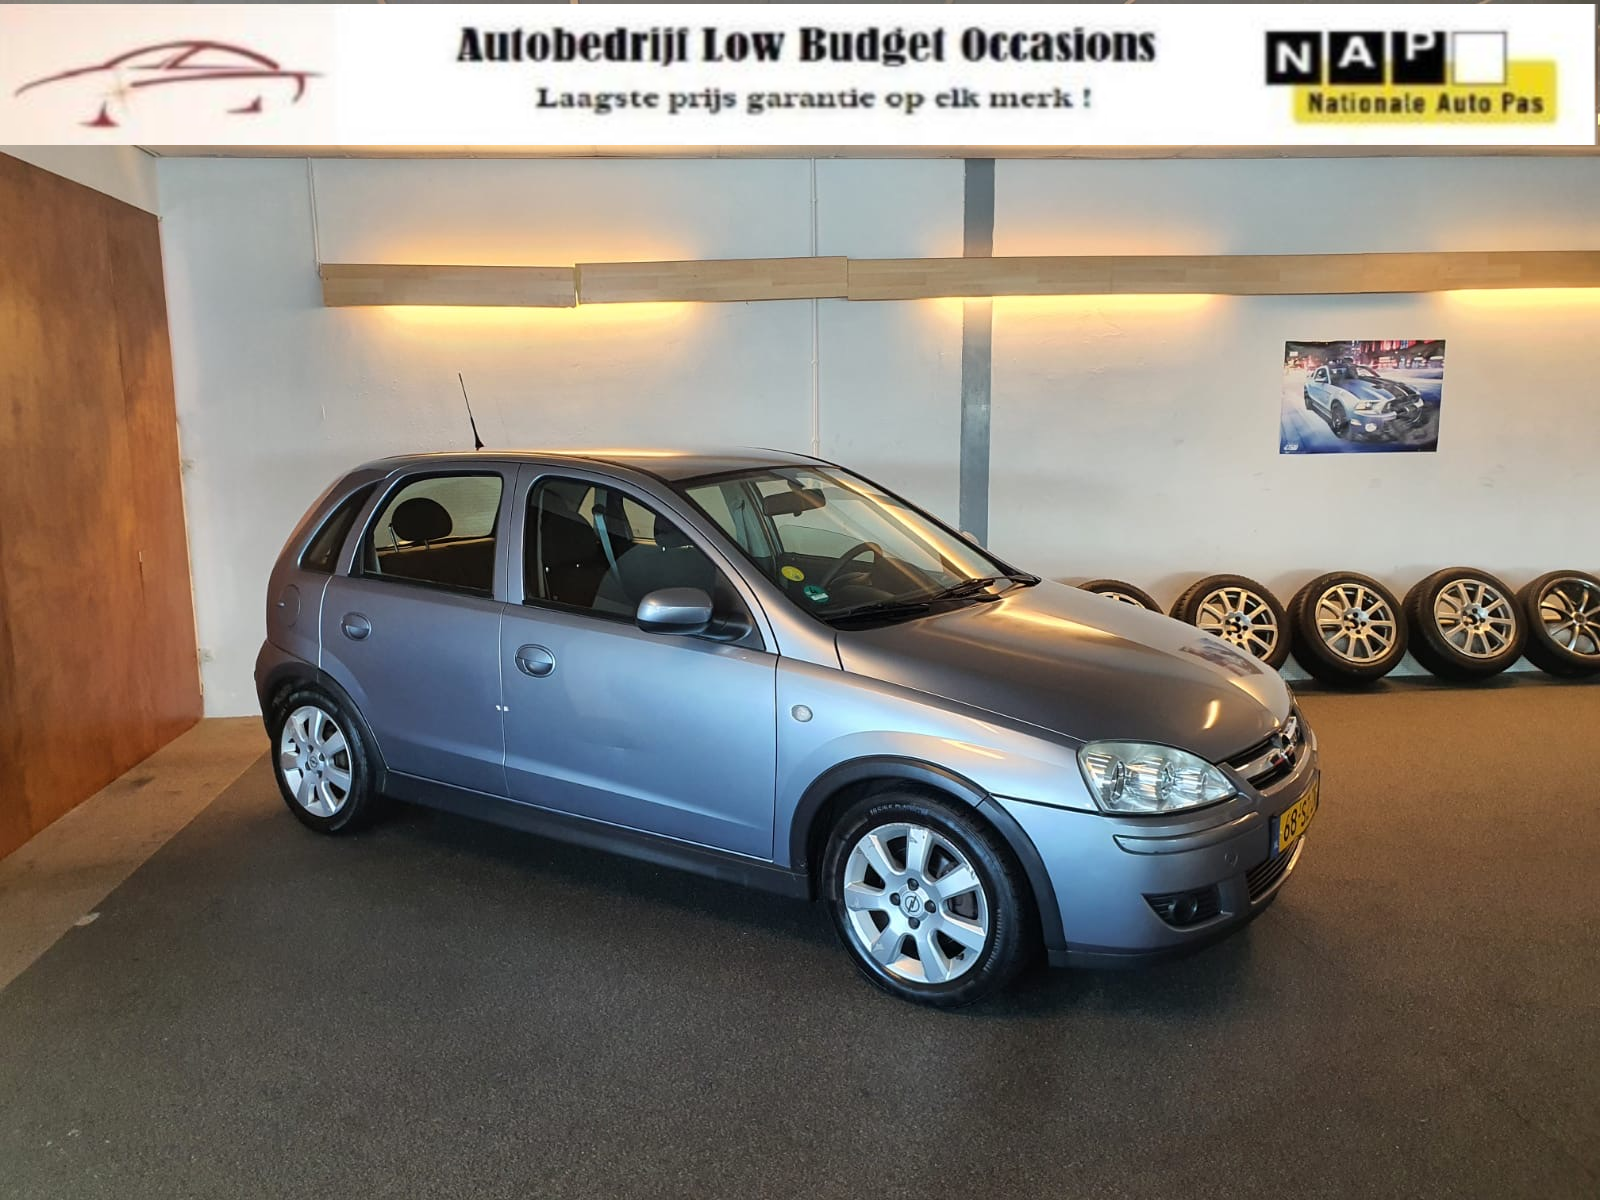 Opel Corsa occasion - Low Budget Occasions